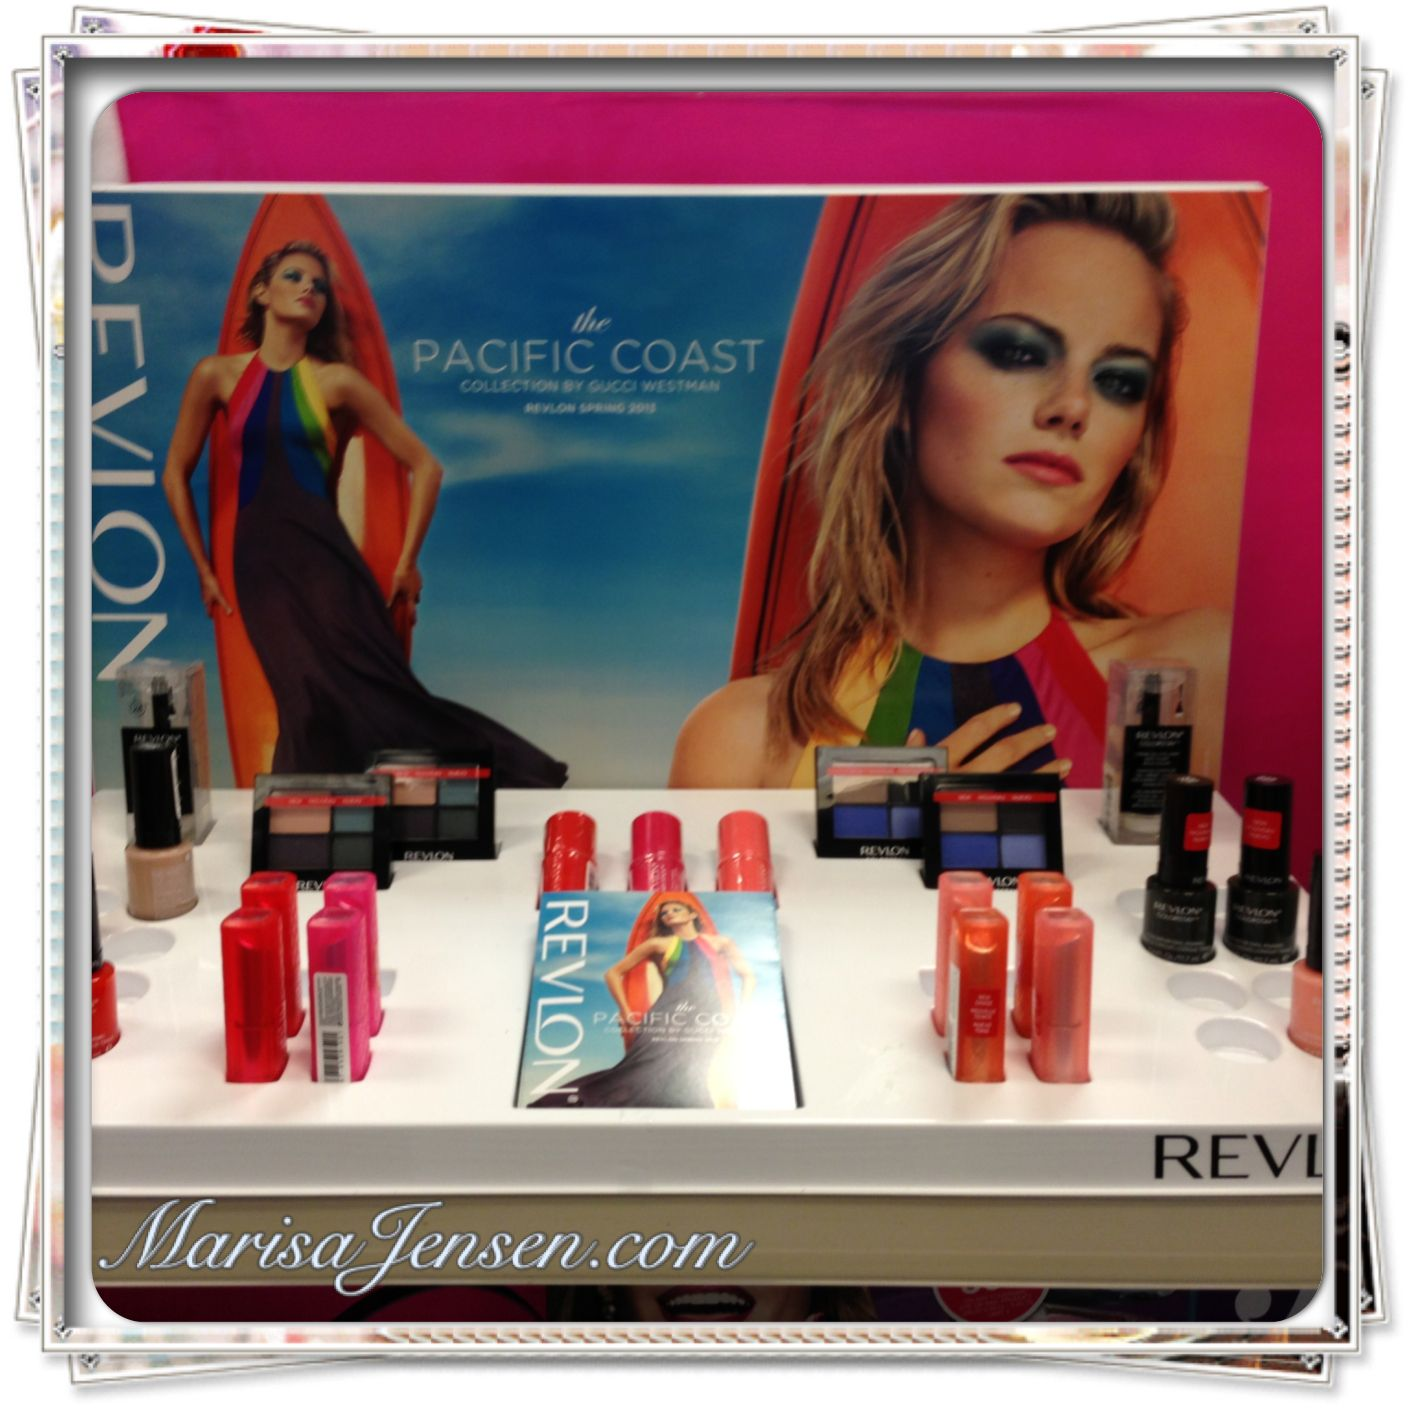 Revlon Pacific Coast Collection By Gucci Westman Pacific